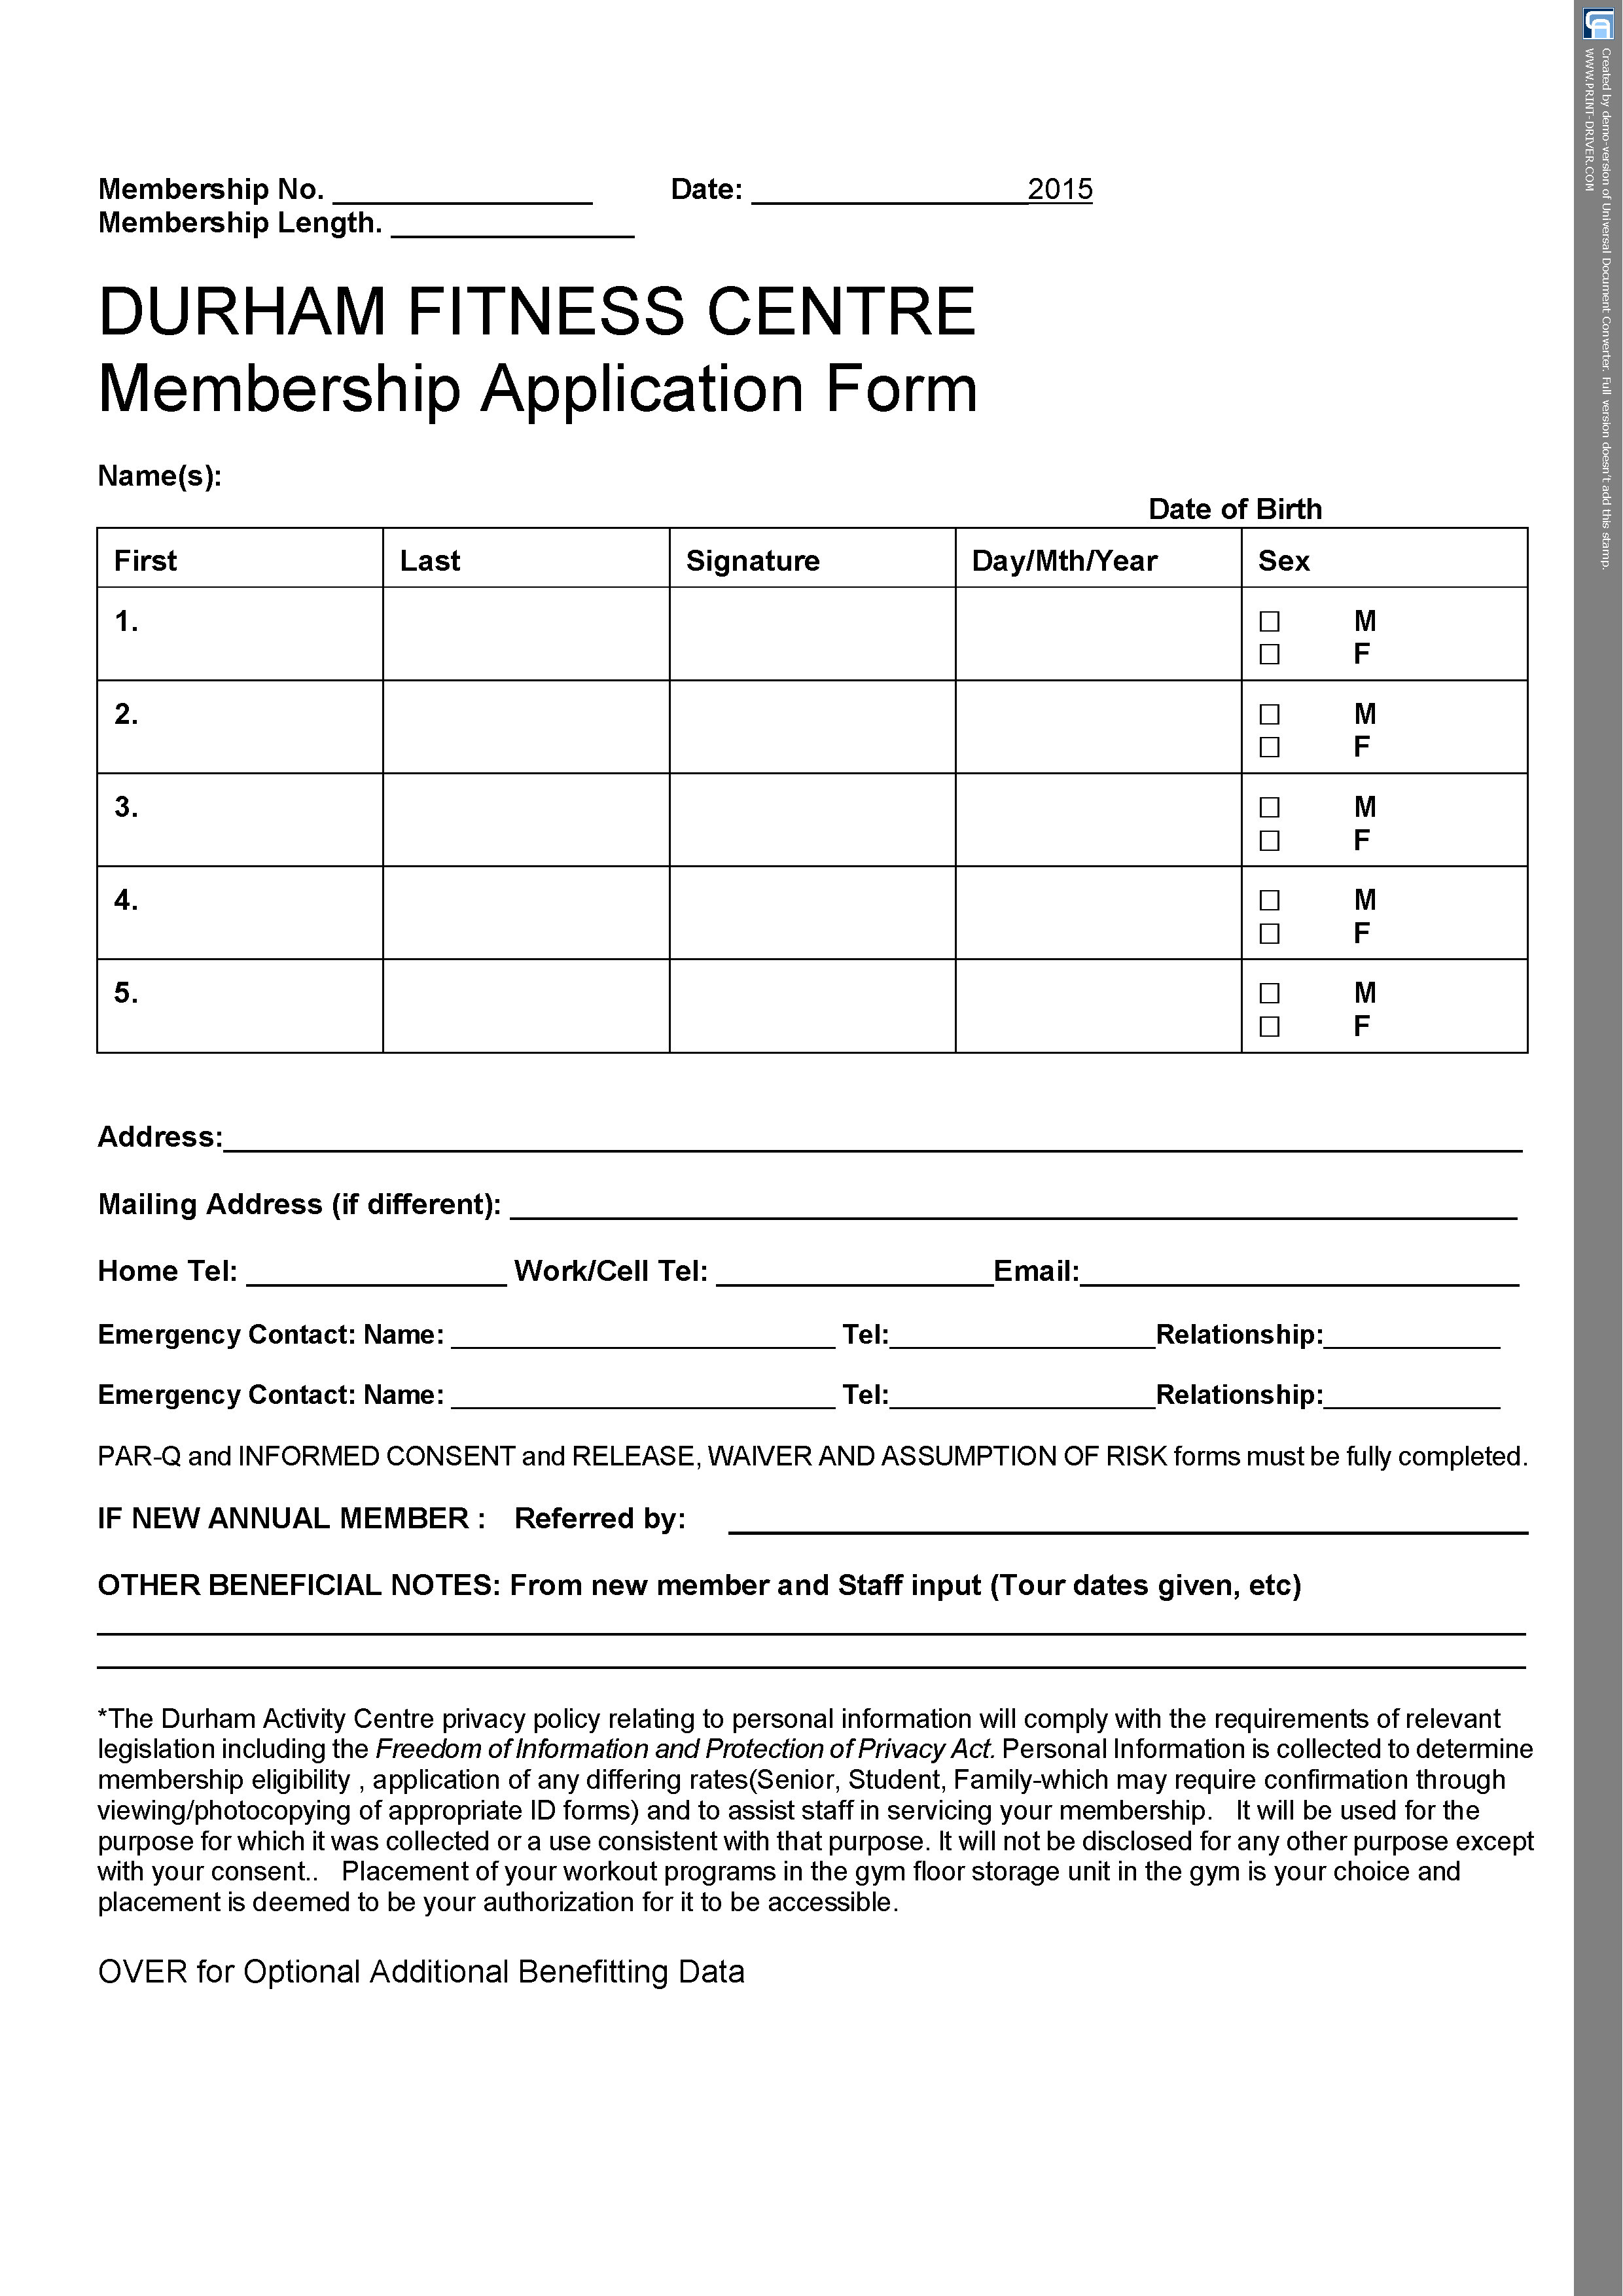 Membership application-waiver 2015